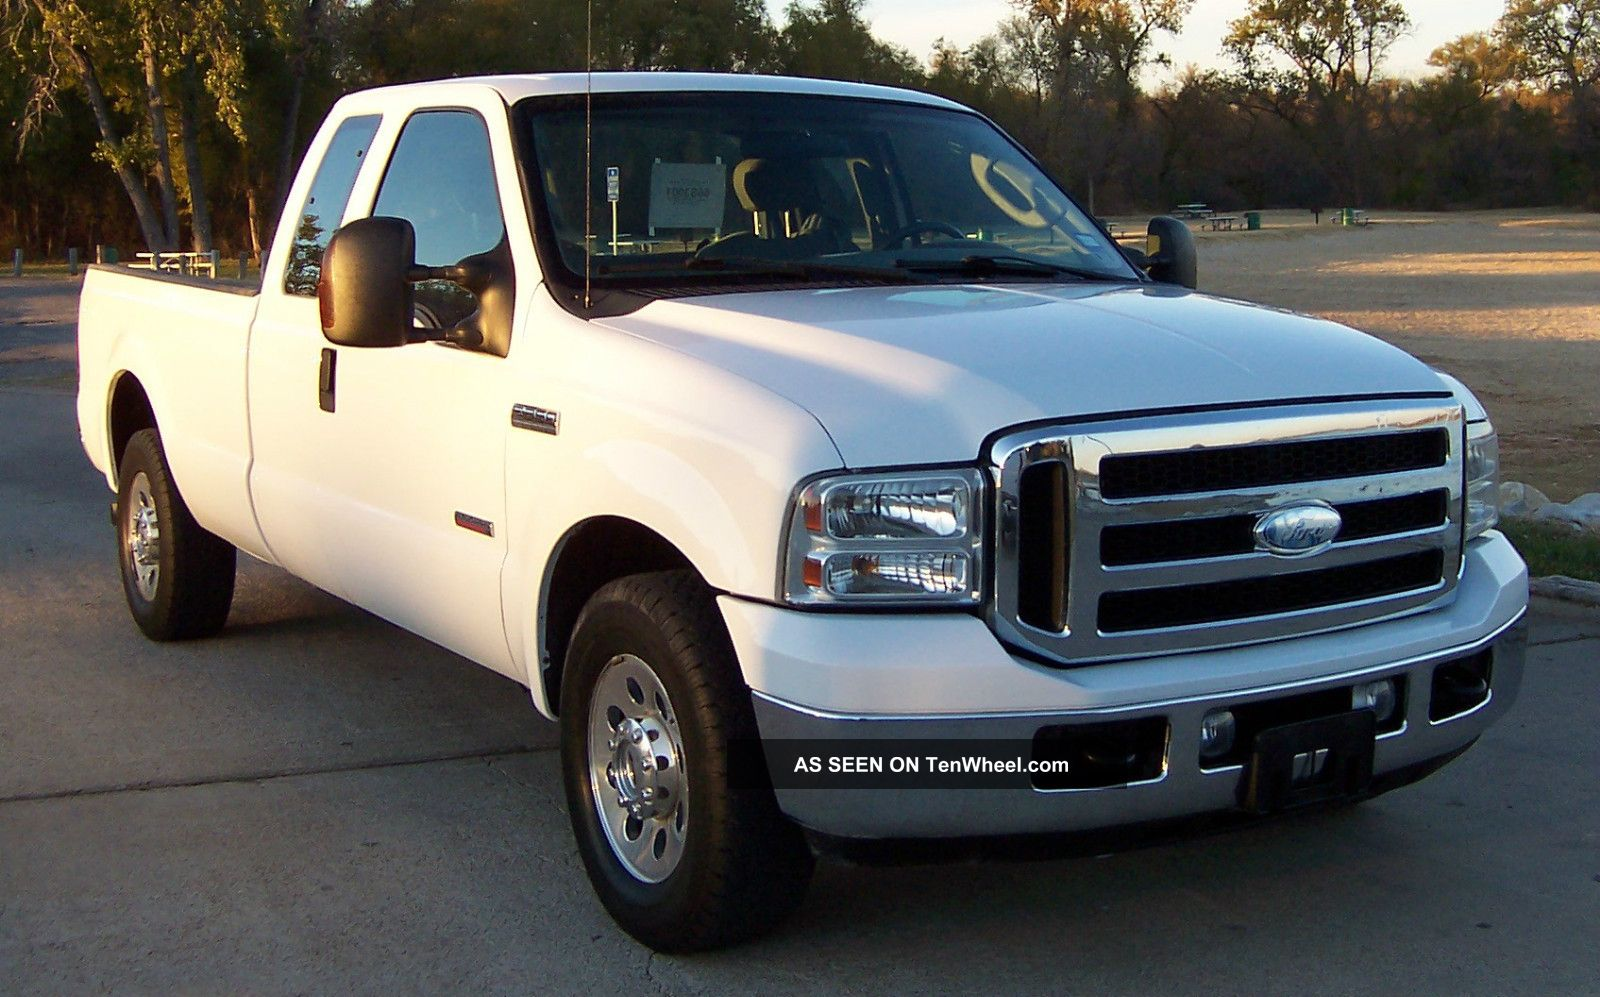 2007 ford f250 xlt duty cab with 6 0 liter power stroke turbo diesel. Black Bedroom Furniture Sets. Home Design Ideas